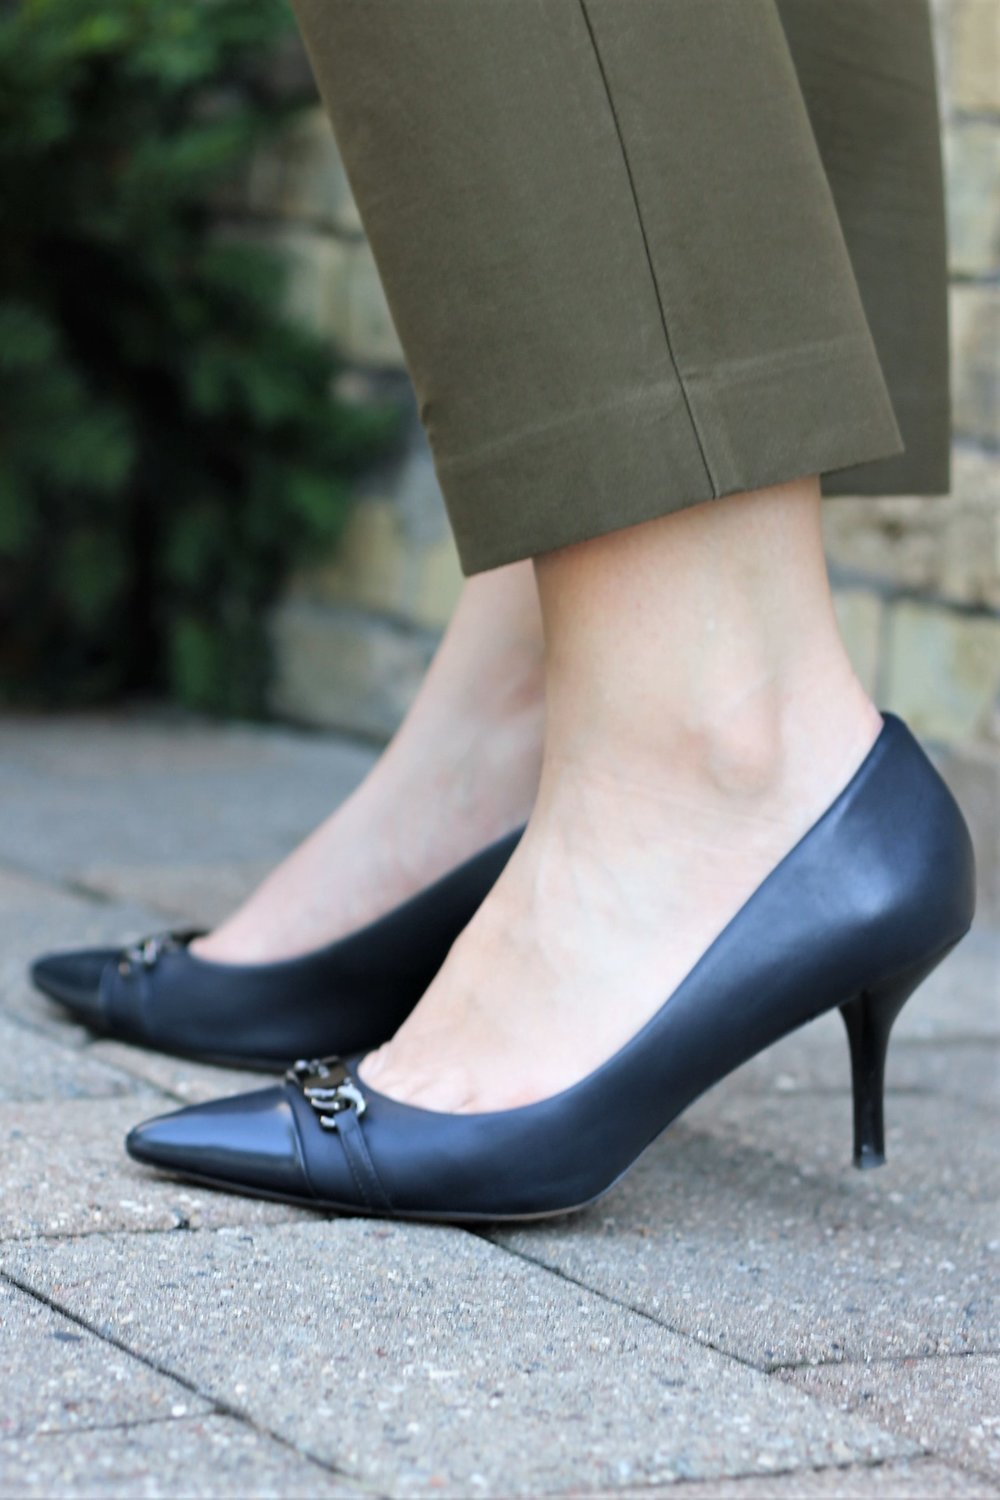 Olive & Navy | A Match Made in Heaven (for the Office) | Work & What She Wore